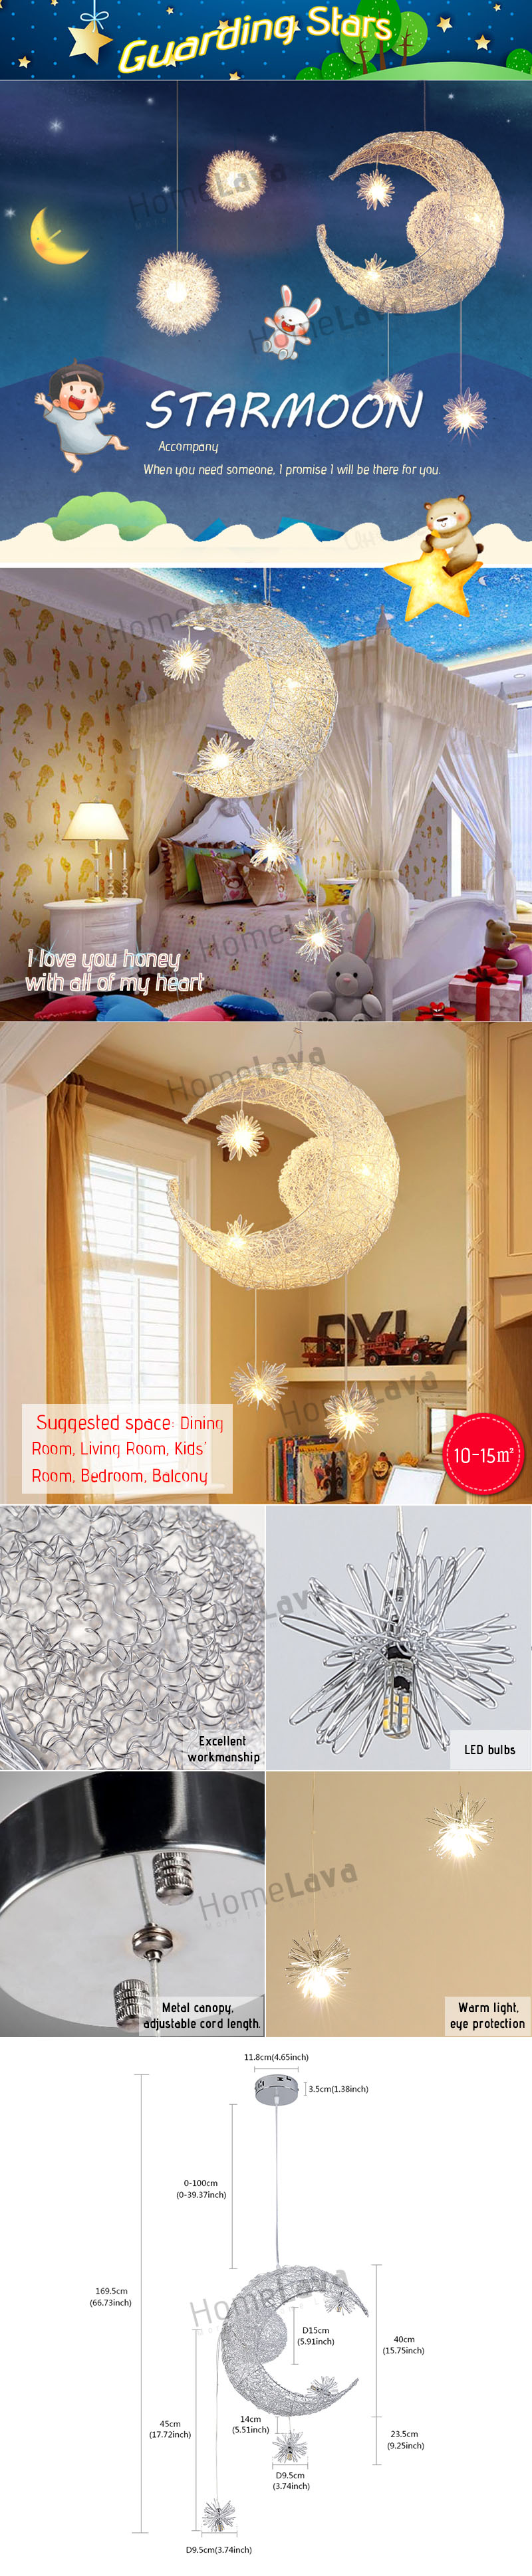 Ceiling Lights Modern Moon Star Featured LED Pendant Lights Mini Style Kitchen Lighting Ideas Dining Room Lighting Ideas Lighting Living Room with 5 Lights(Guarding Stars)